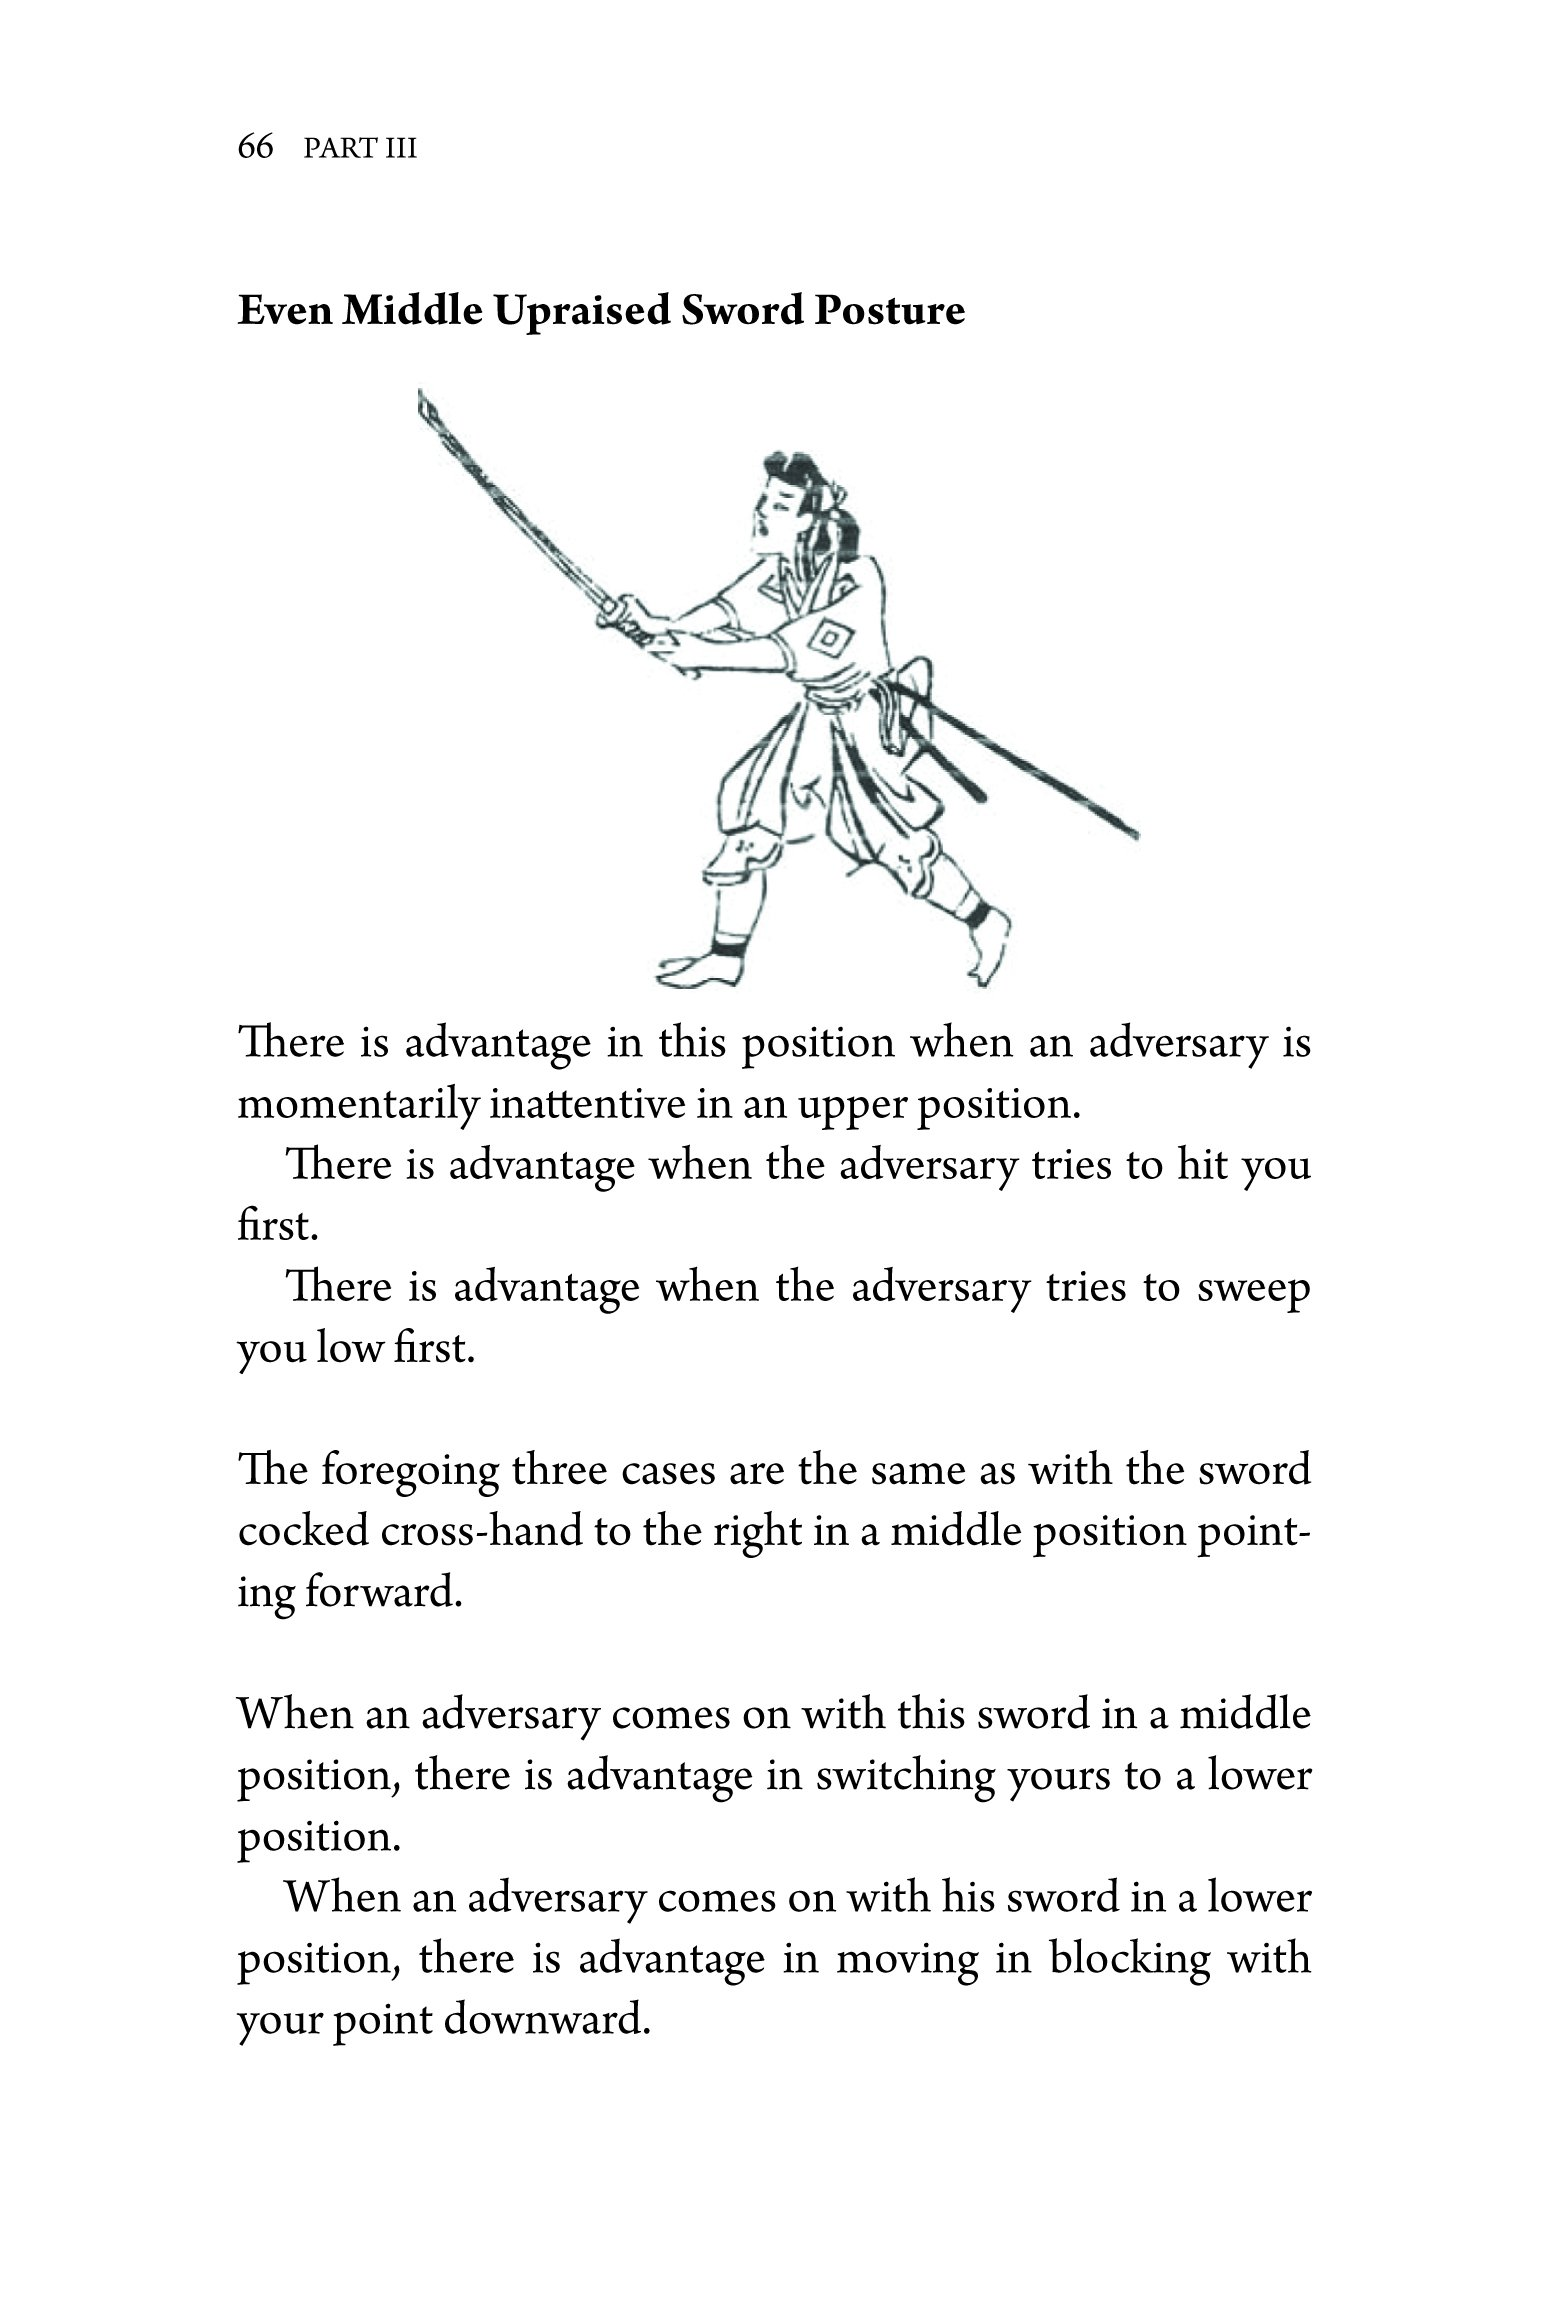 Secrets of the Japanese Art of Warfare: From the School of ...